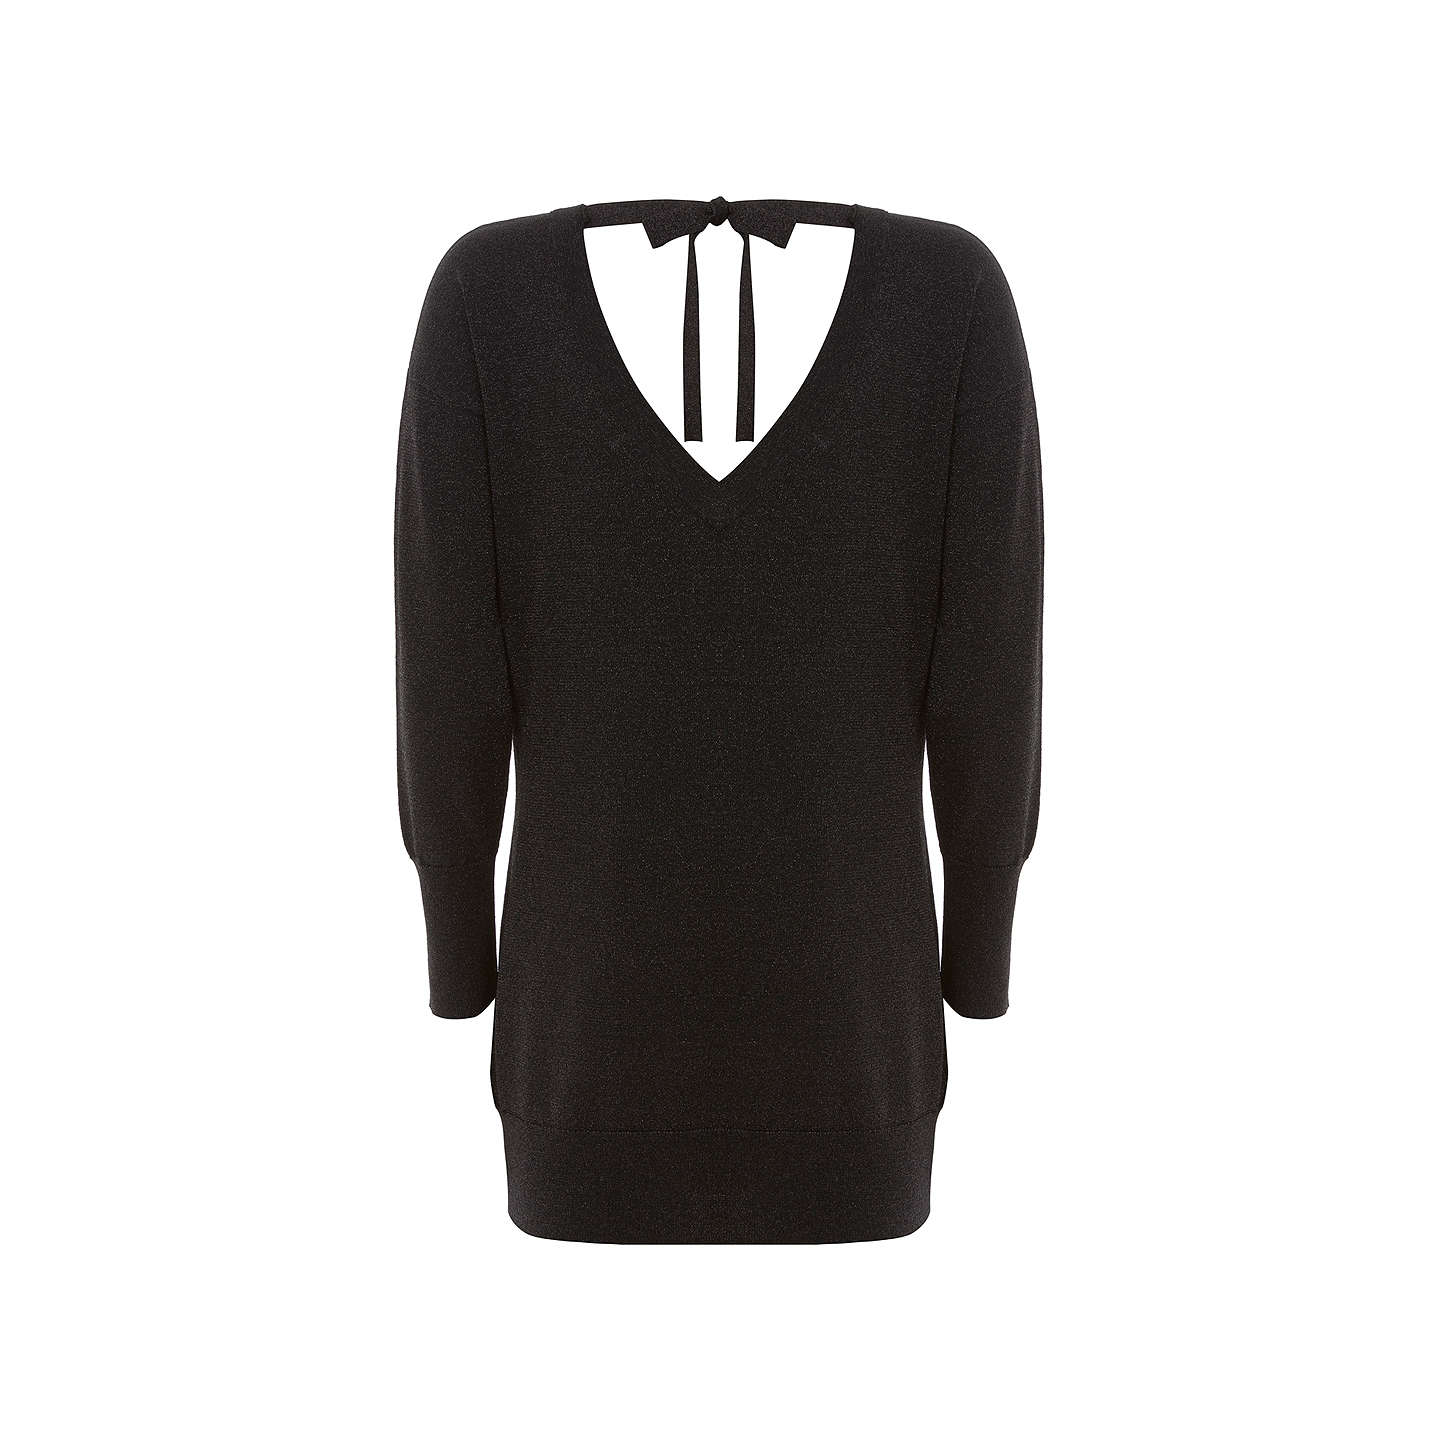 BuyMint Velvet Metallic Tunic Jumper, Black, 6 Online at johnlewis.com